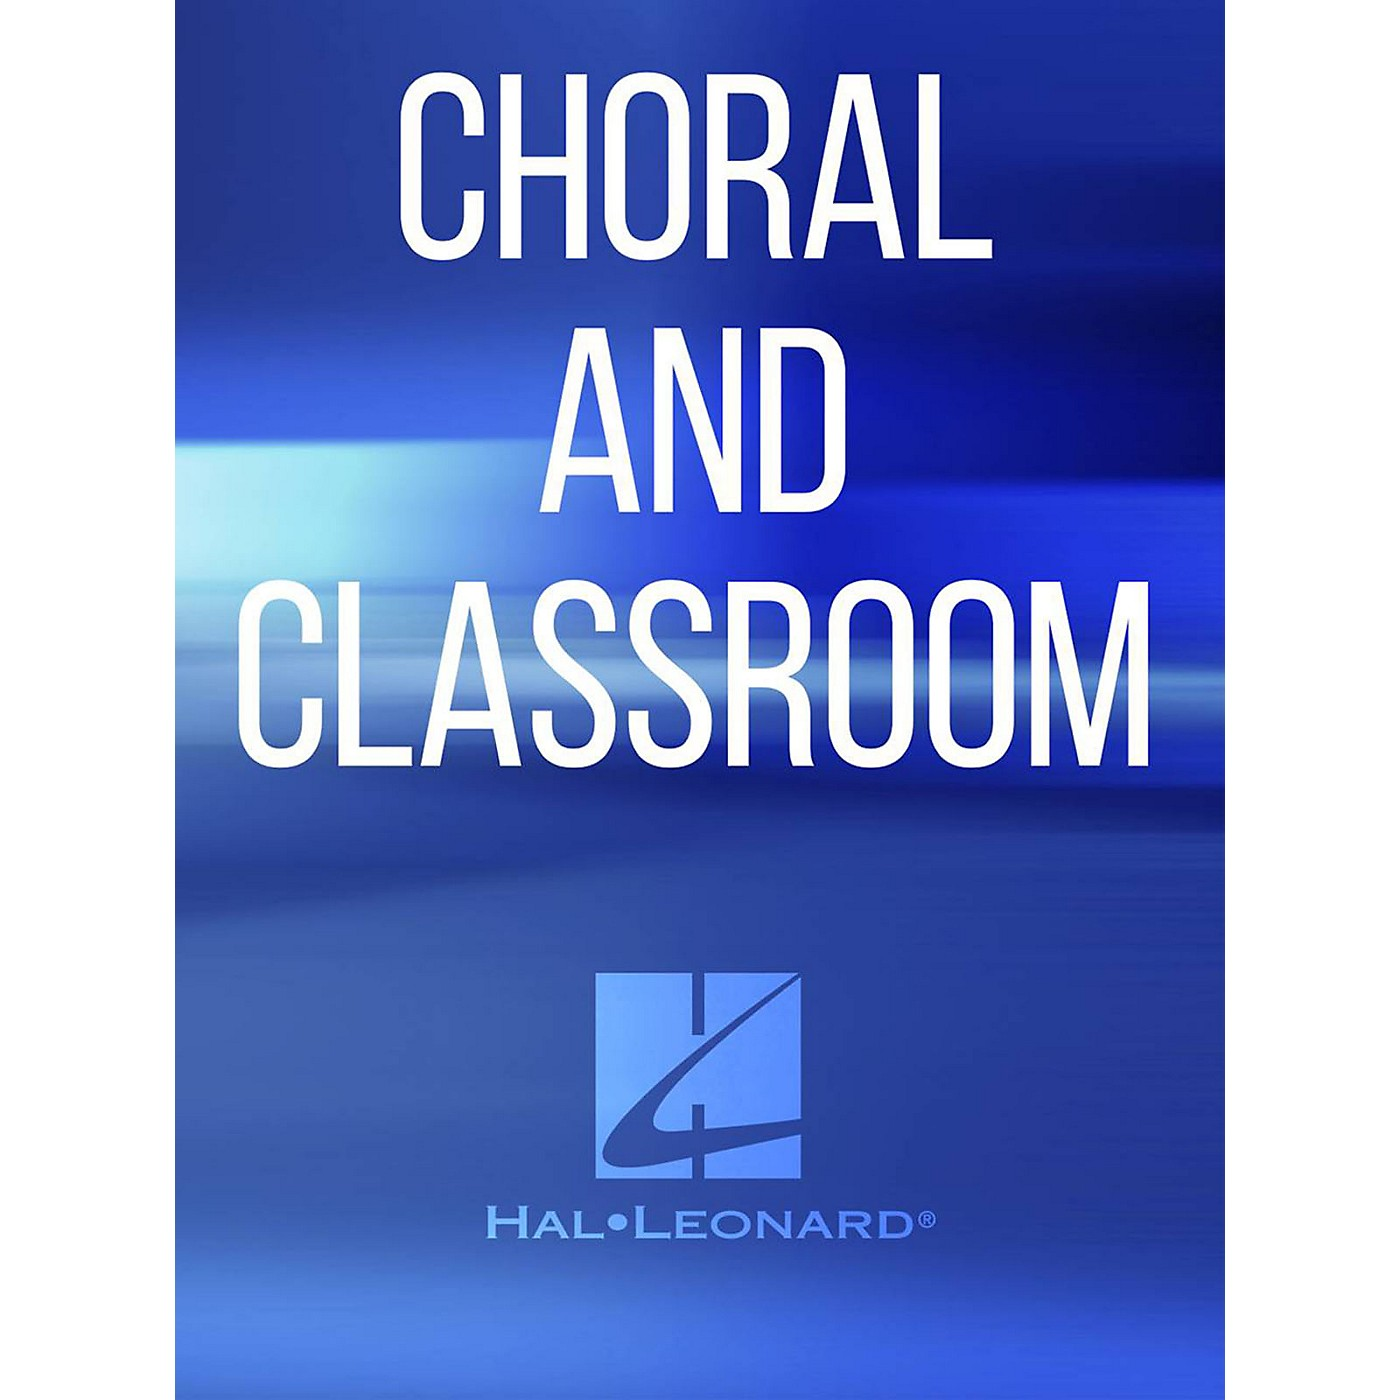 Hal Leonard Die Nachtigall Op.59 No. 4 SATB Composed by Lucile Lynn thumbnail